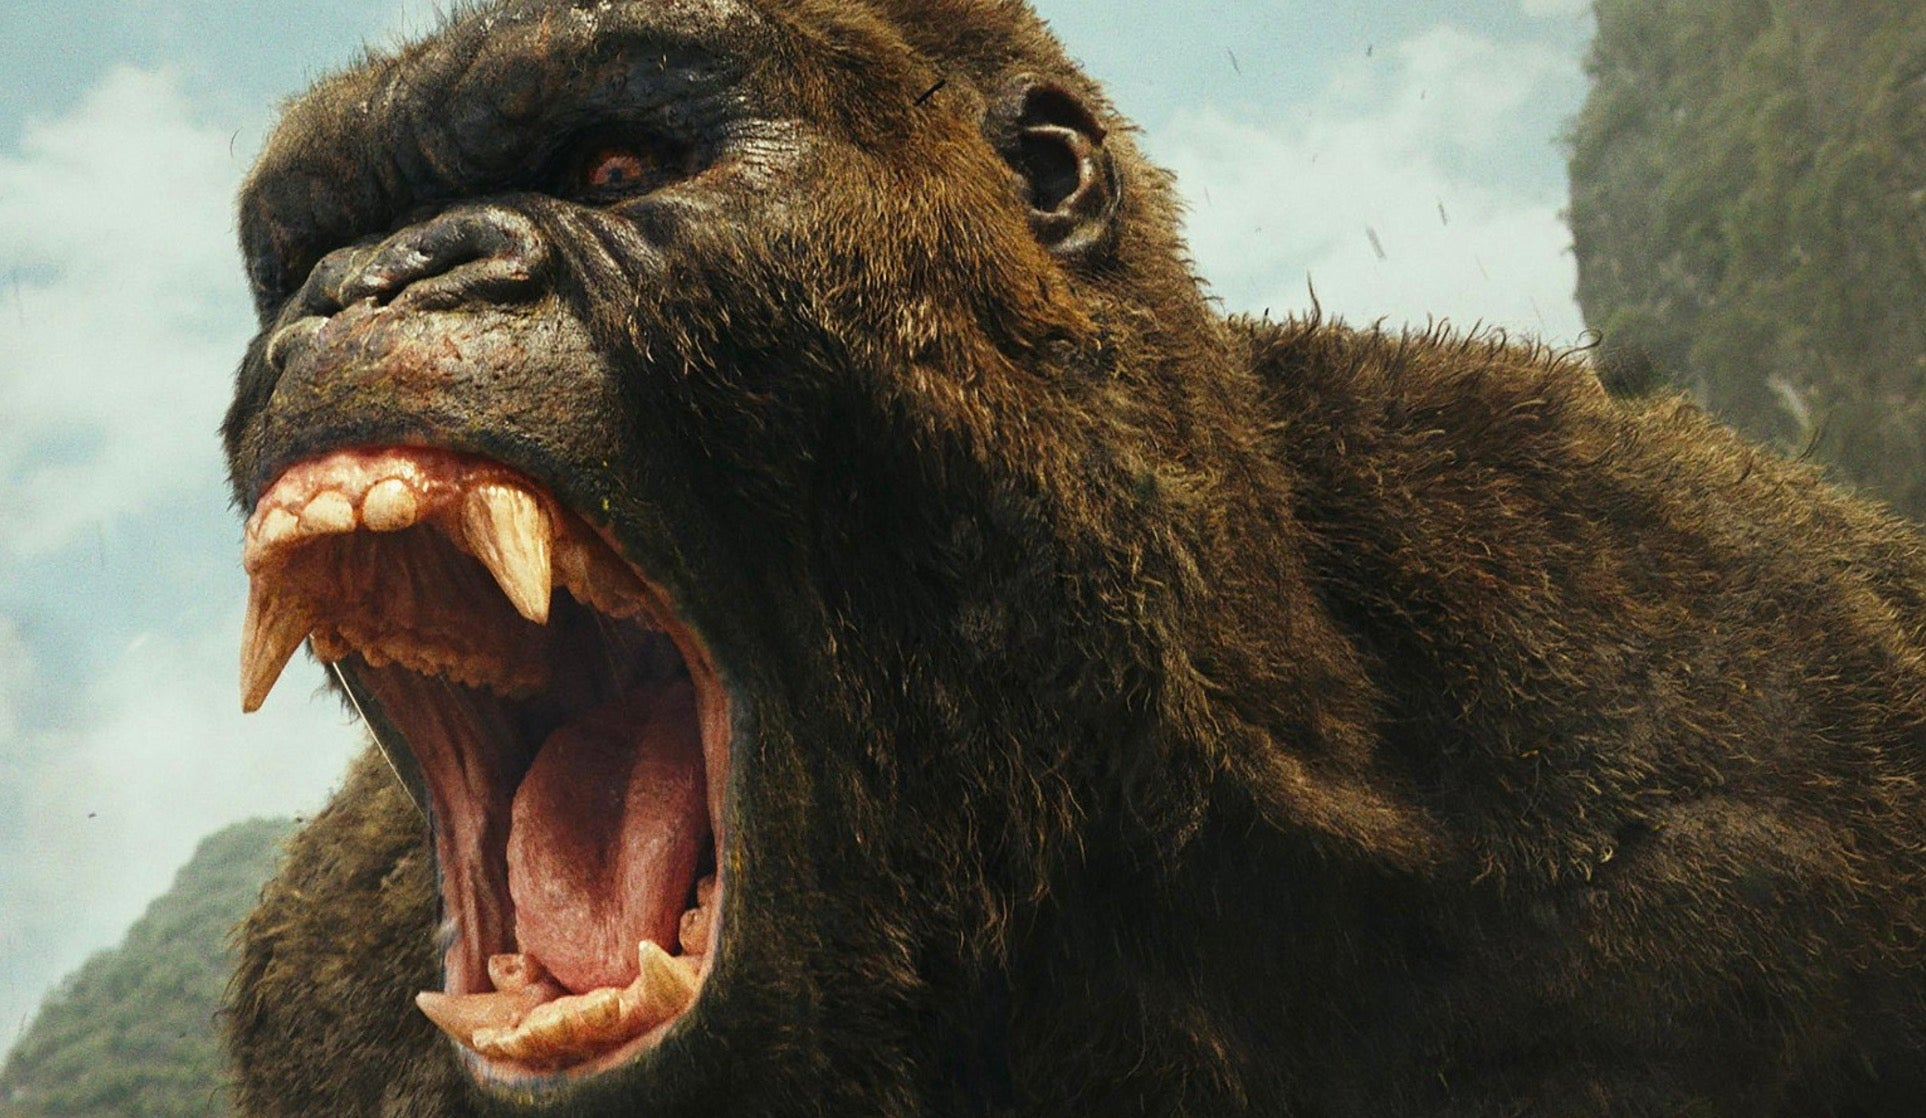 Godzilla Vs. Kong Just Landed An Unexpected But Inspired Choice As Its Director